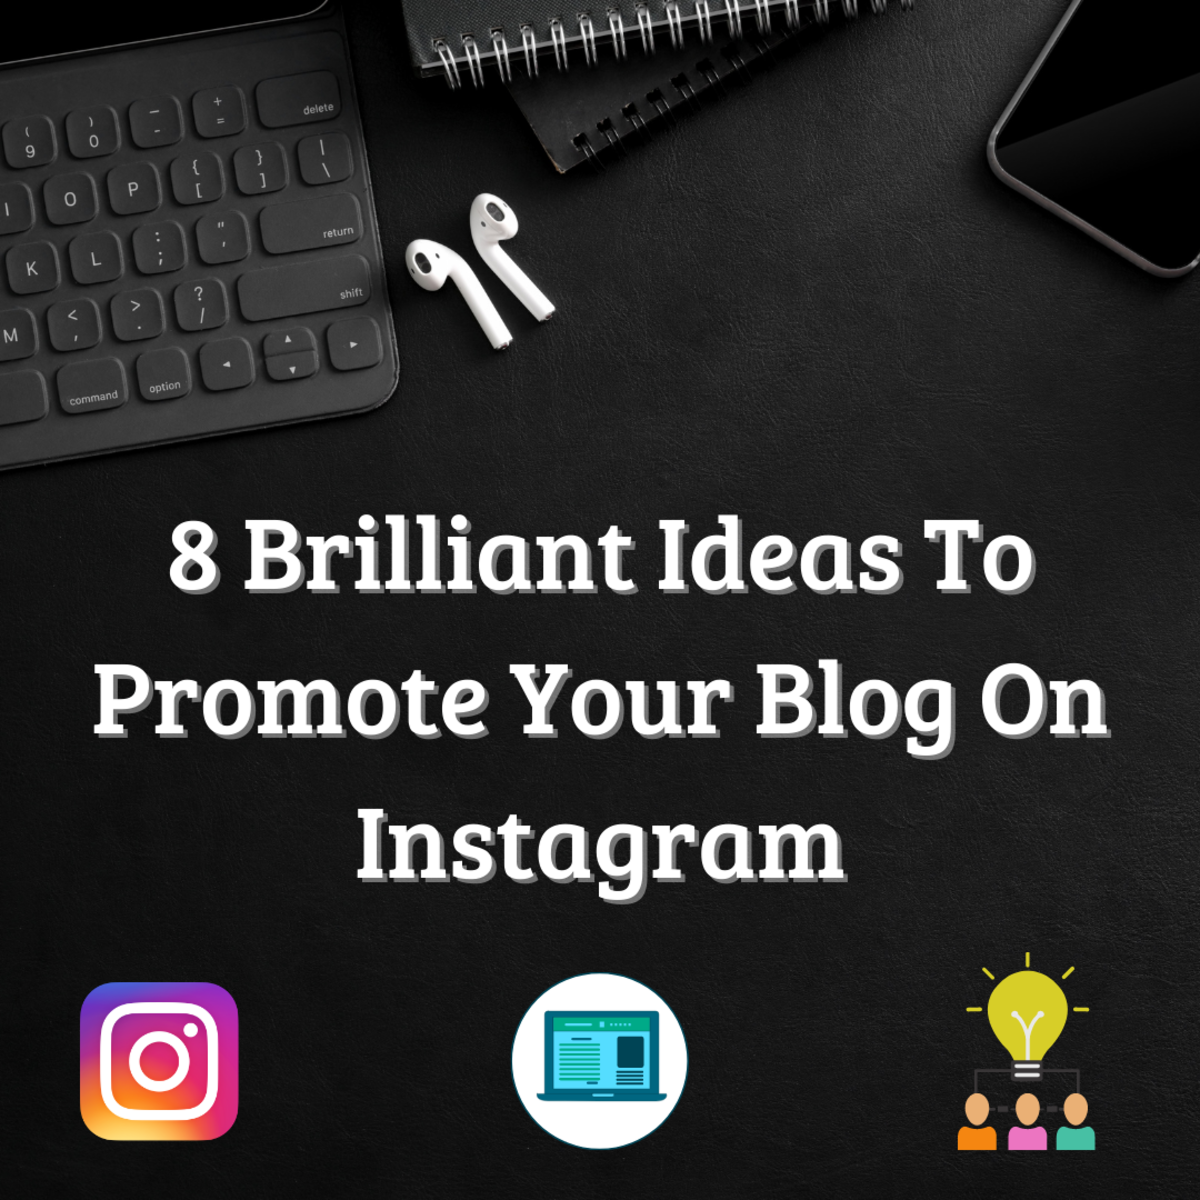 8 Brilliant Ideas To Promote Your Blog On Instagram